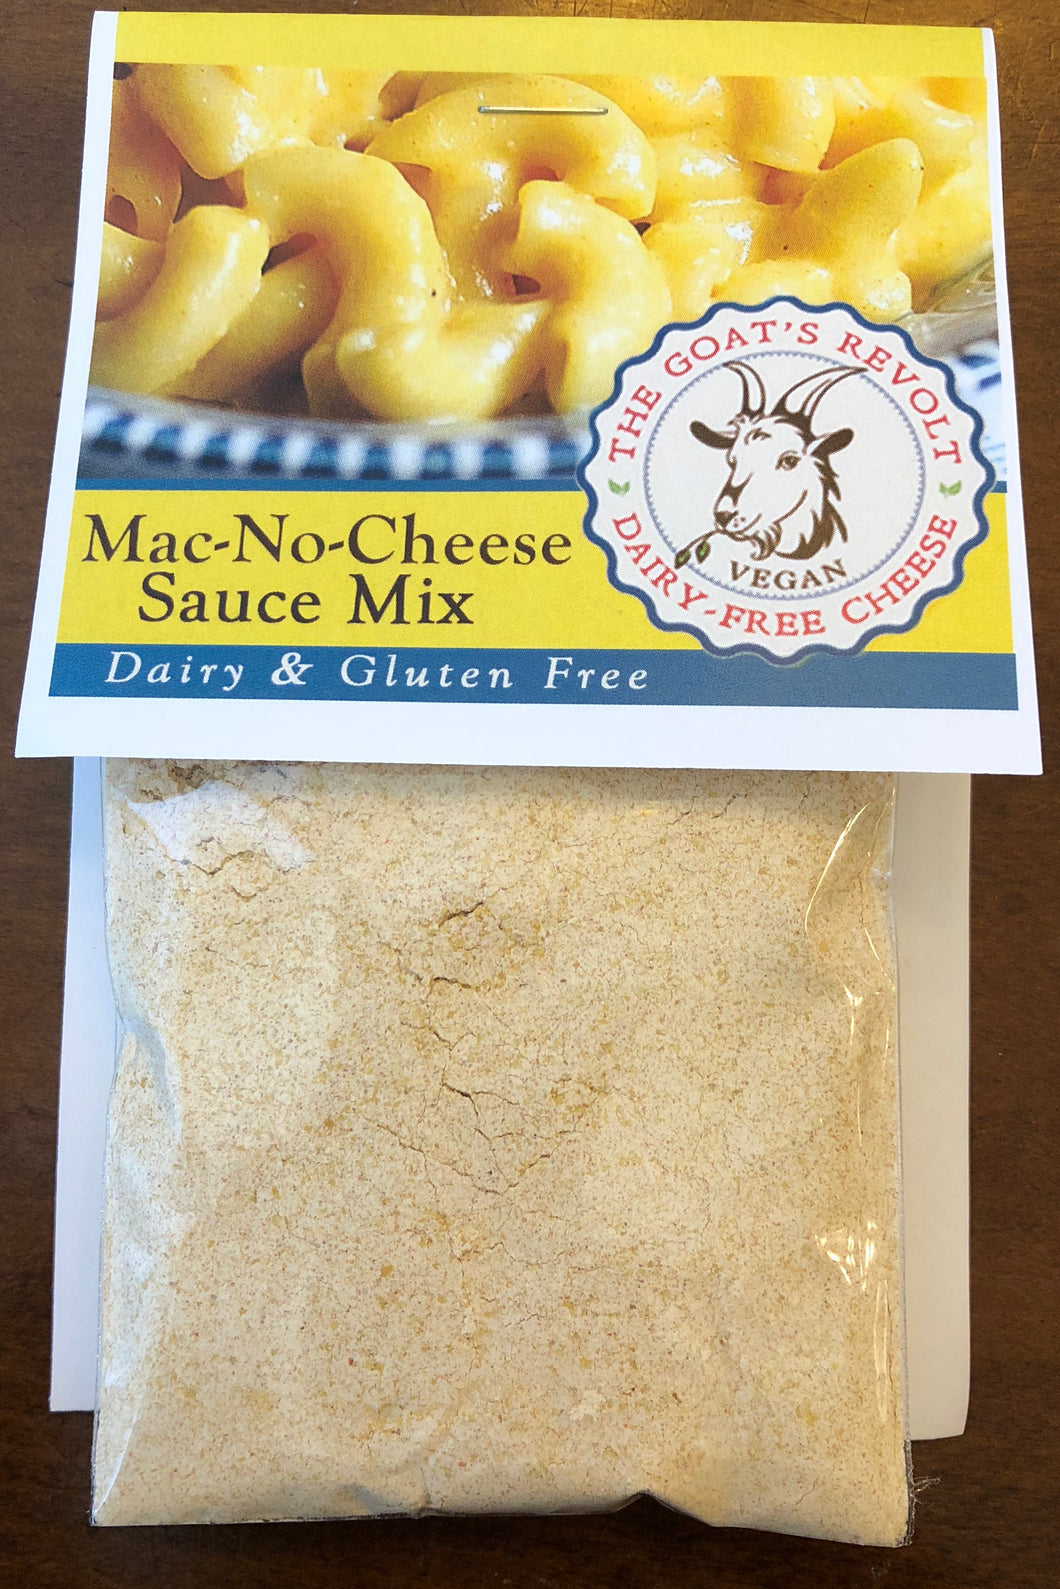 Mac-No-Cheese Sauce Mix